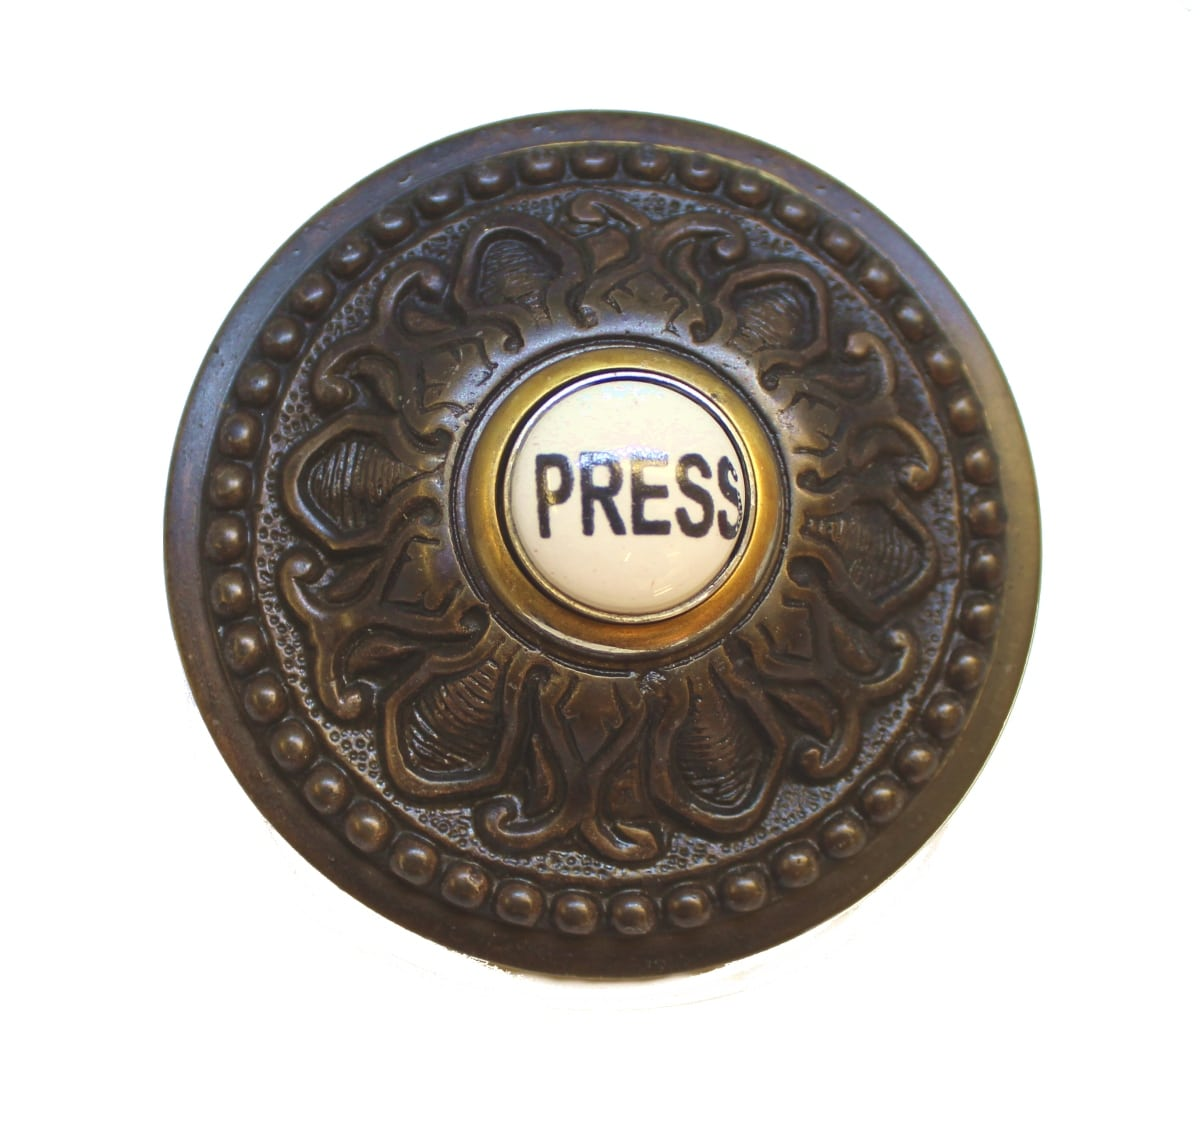 Superieur Round PRESS Porcelain Door Bell Button Electric Brass Old Style Aged Bronze    The Kings Bay